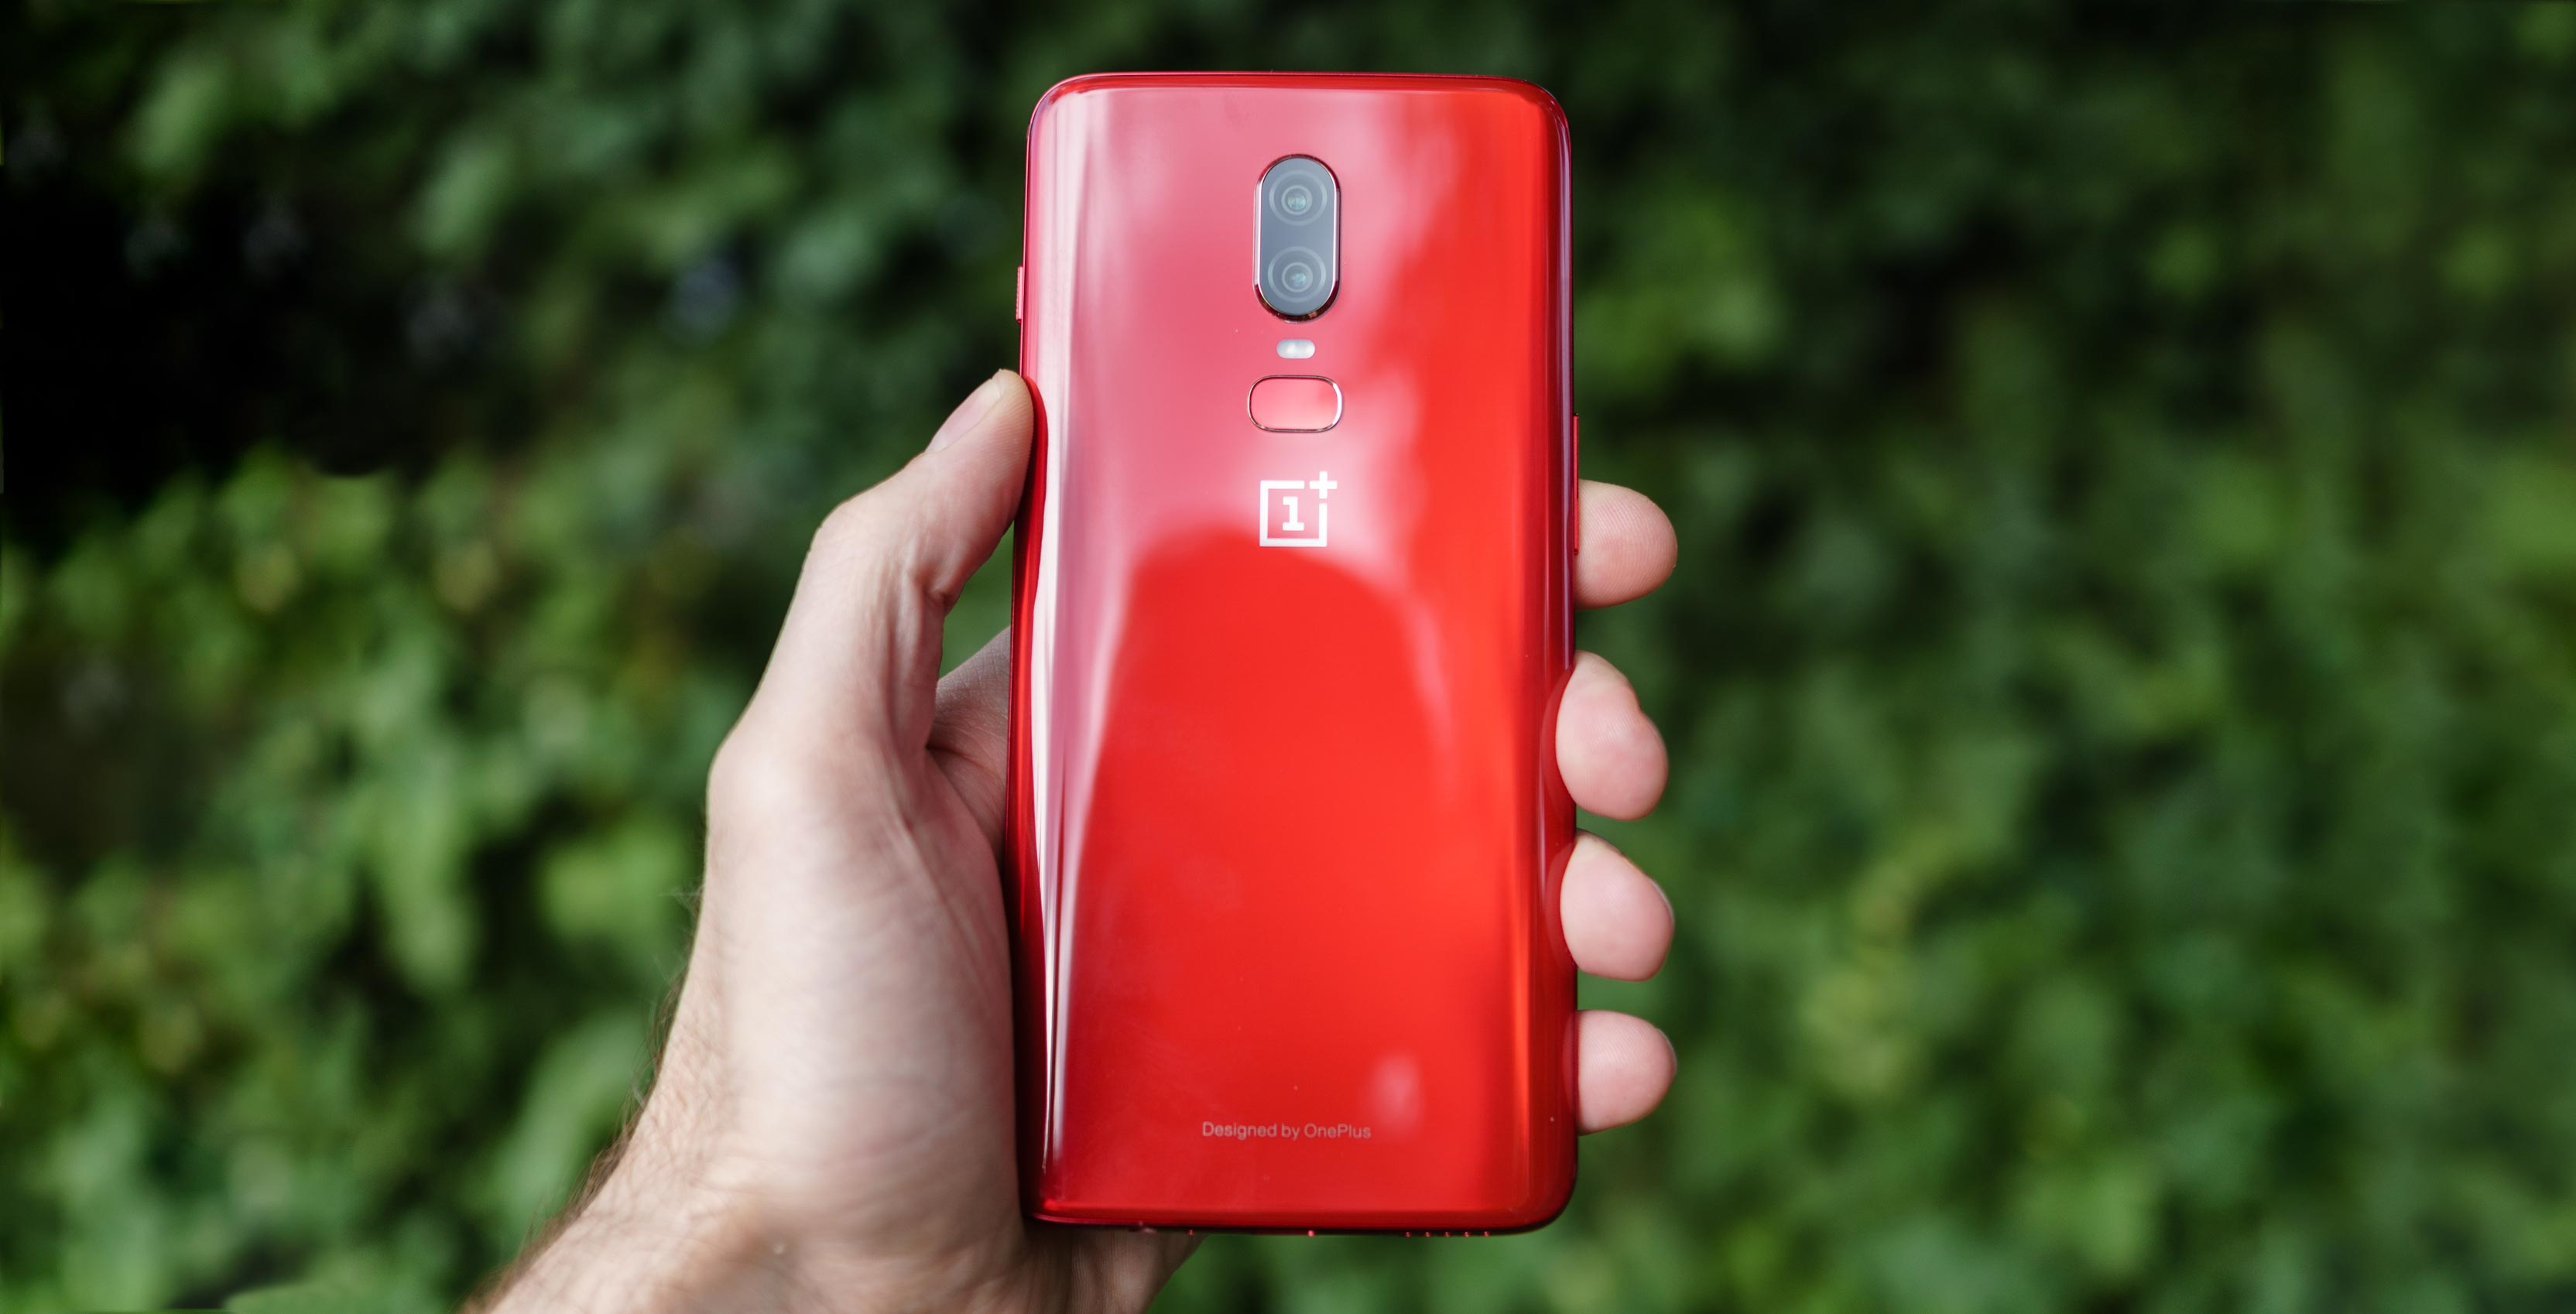 Apple forces OnePlus to move its OnePlus 6T launch up a day